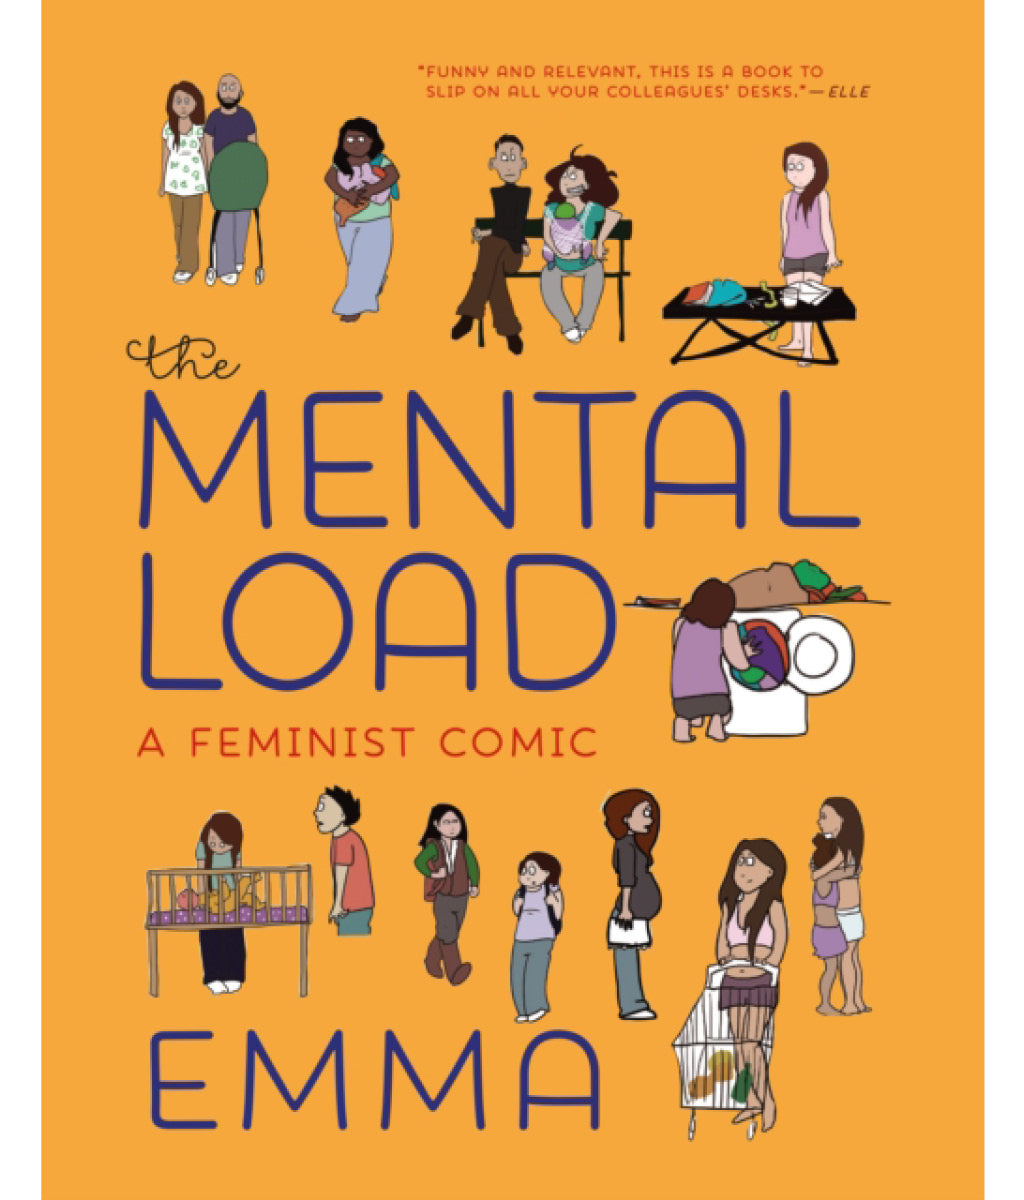 The Mental Load by EMMA